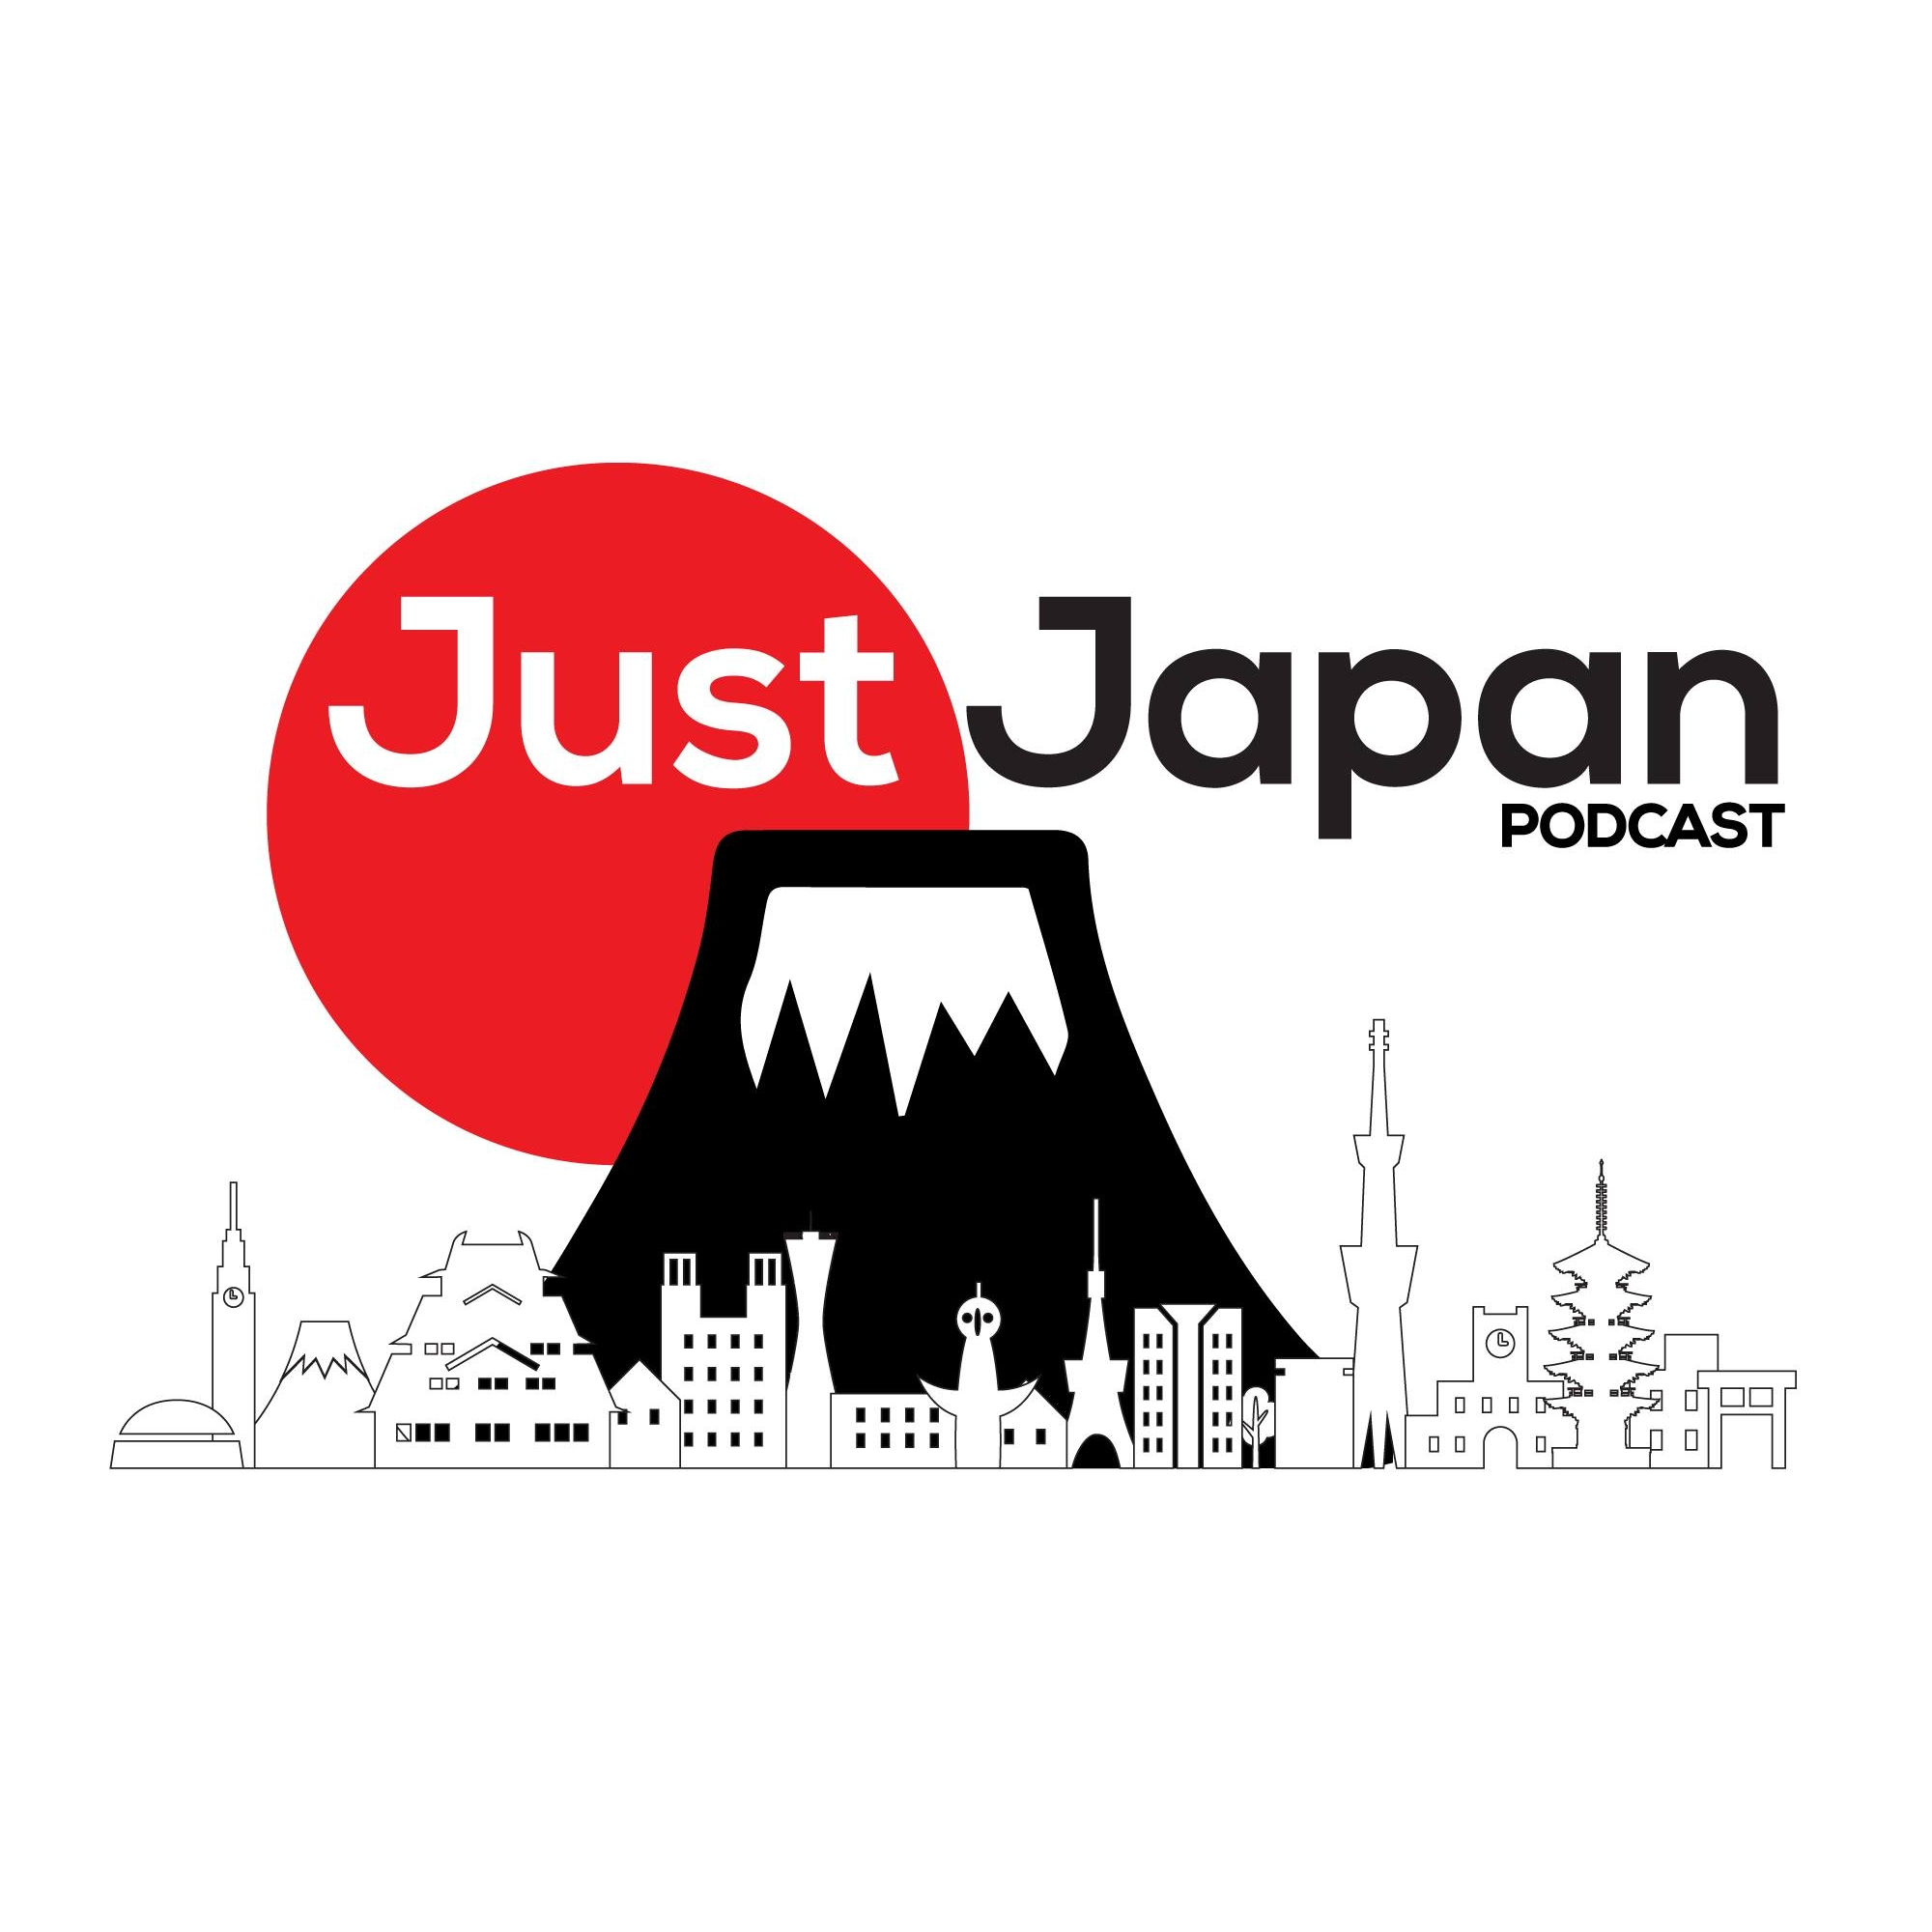 Just Japan Podcast 197: Eric Meal Time  show art